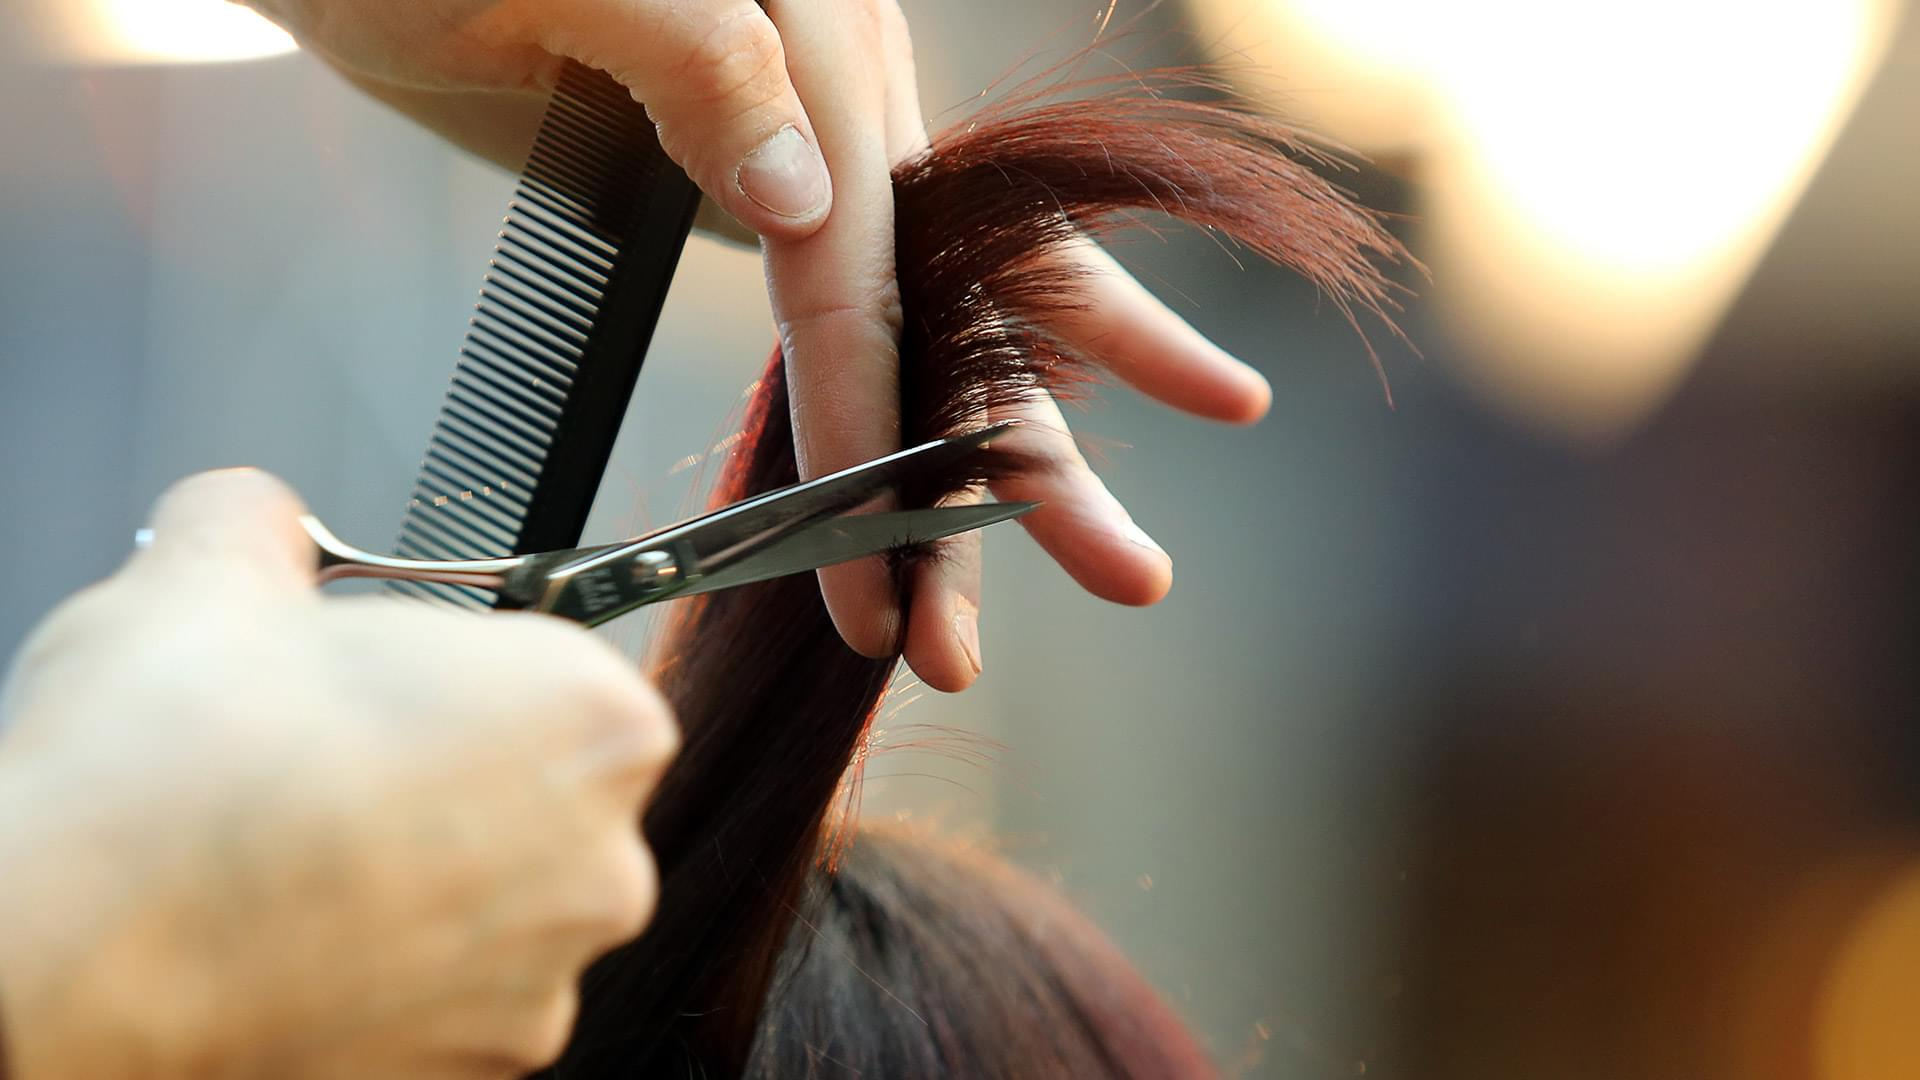 Can Race Affect Hair Drug Test Results?